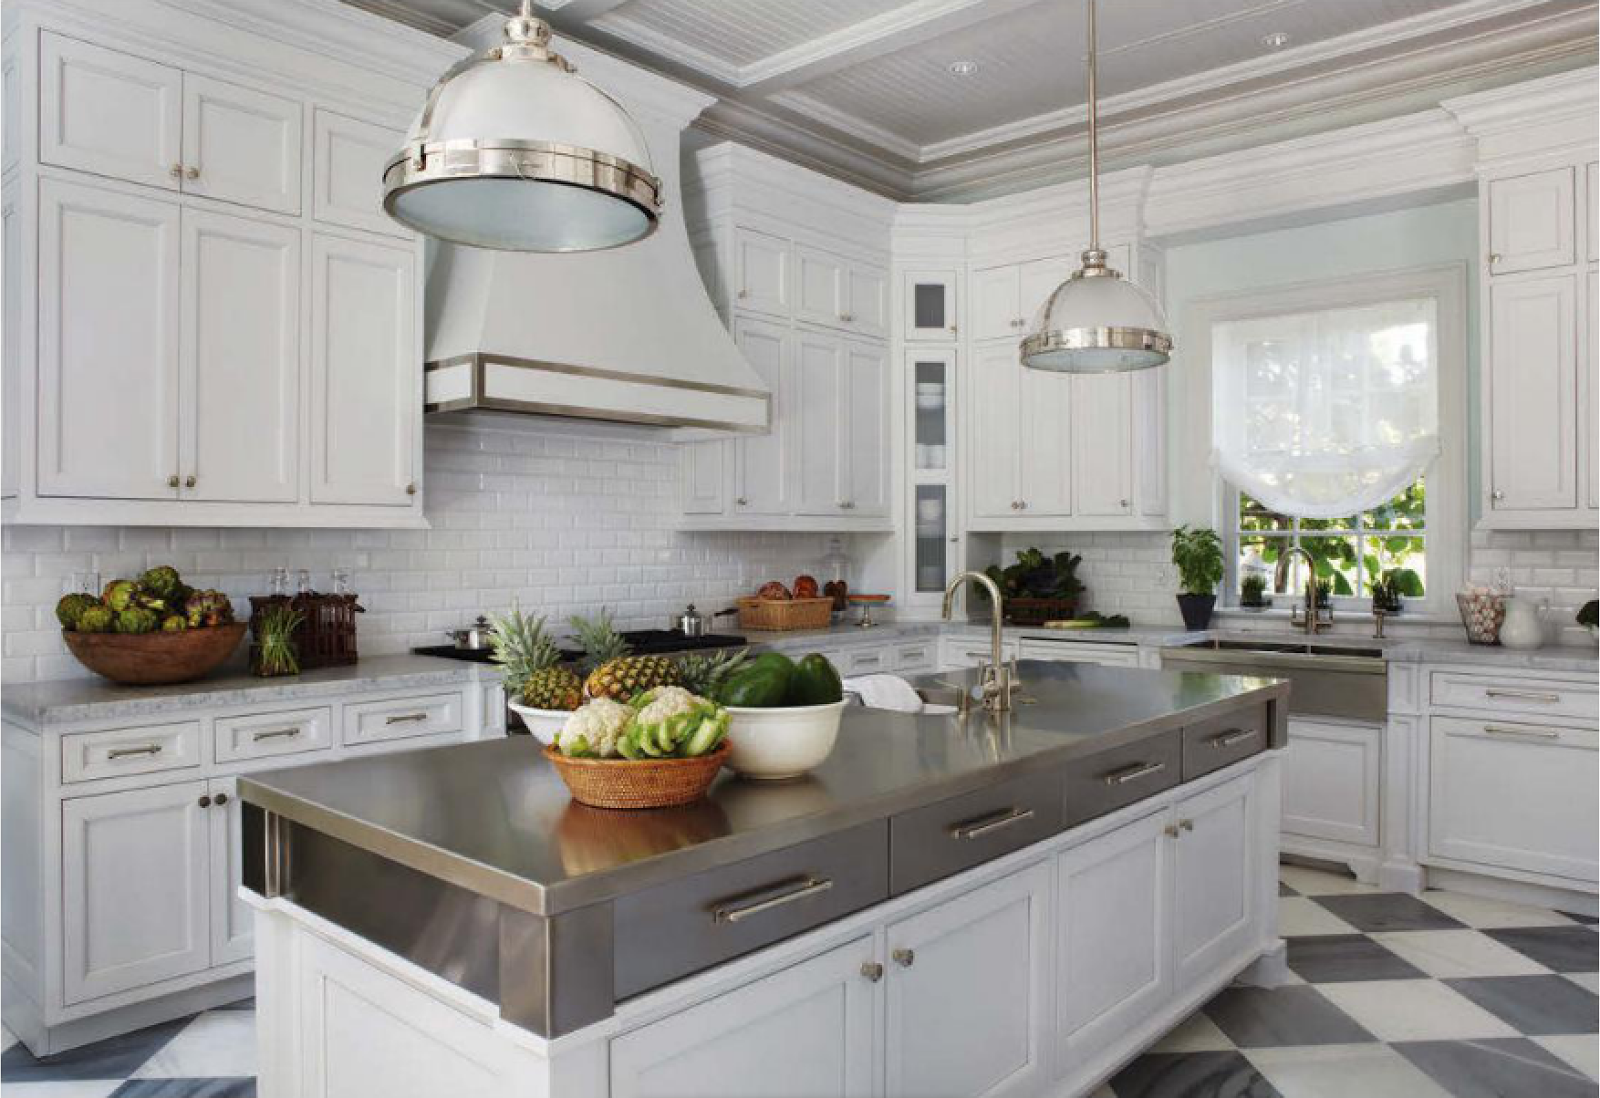 white kitchen cabinets with stainless steel countertops stainless steel kitchen countertops stainless steel countertops wraps the kitchen Gioia